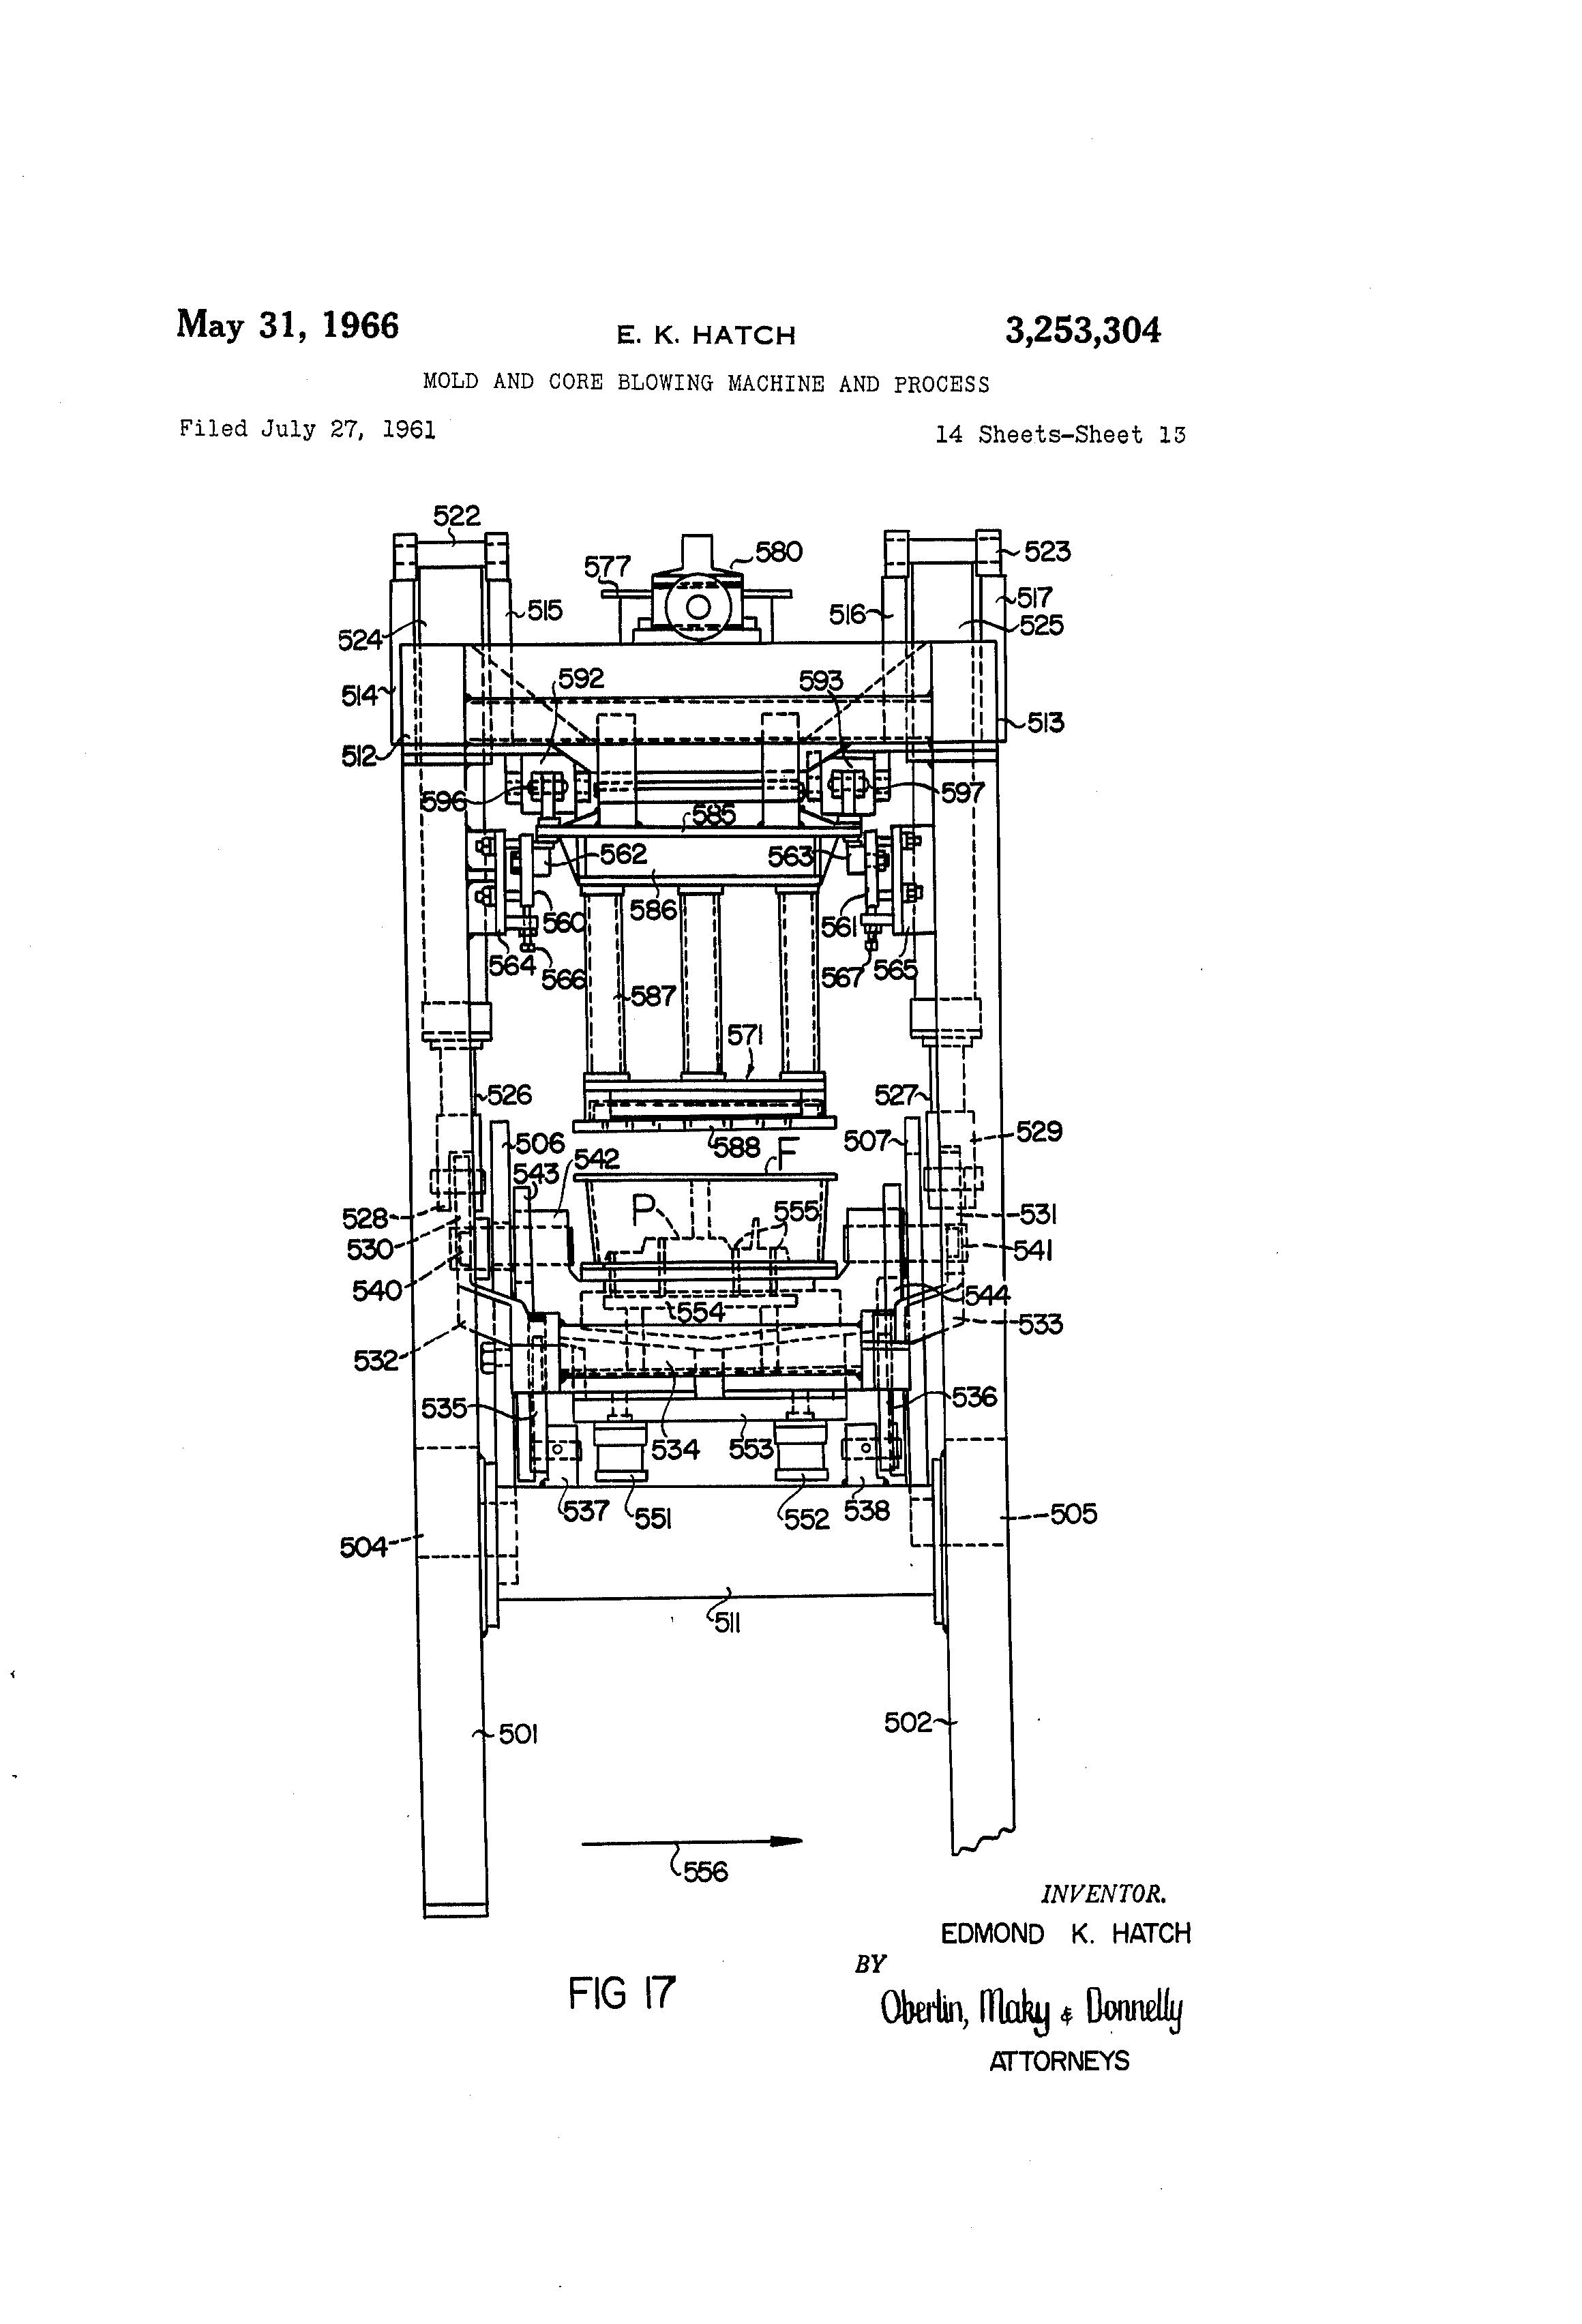 US3253304 12 patent us3253304 mold and core blowing machine and process  at crackthecode.co